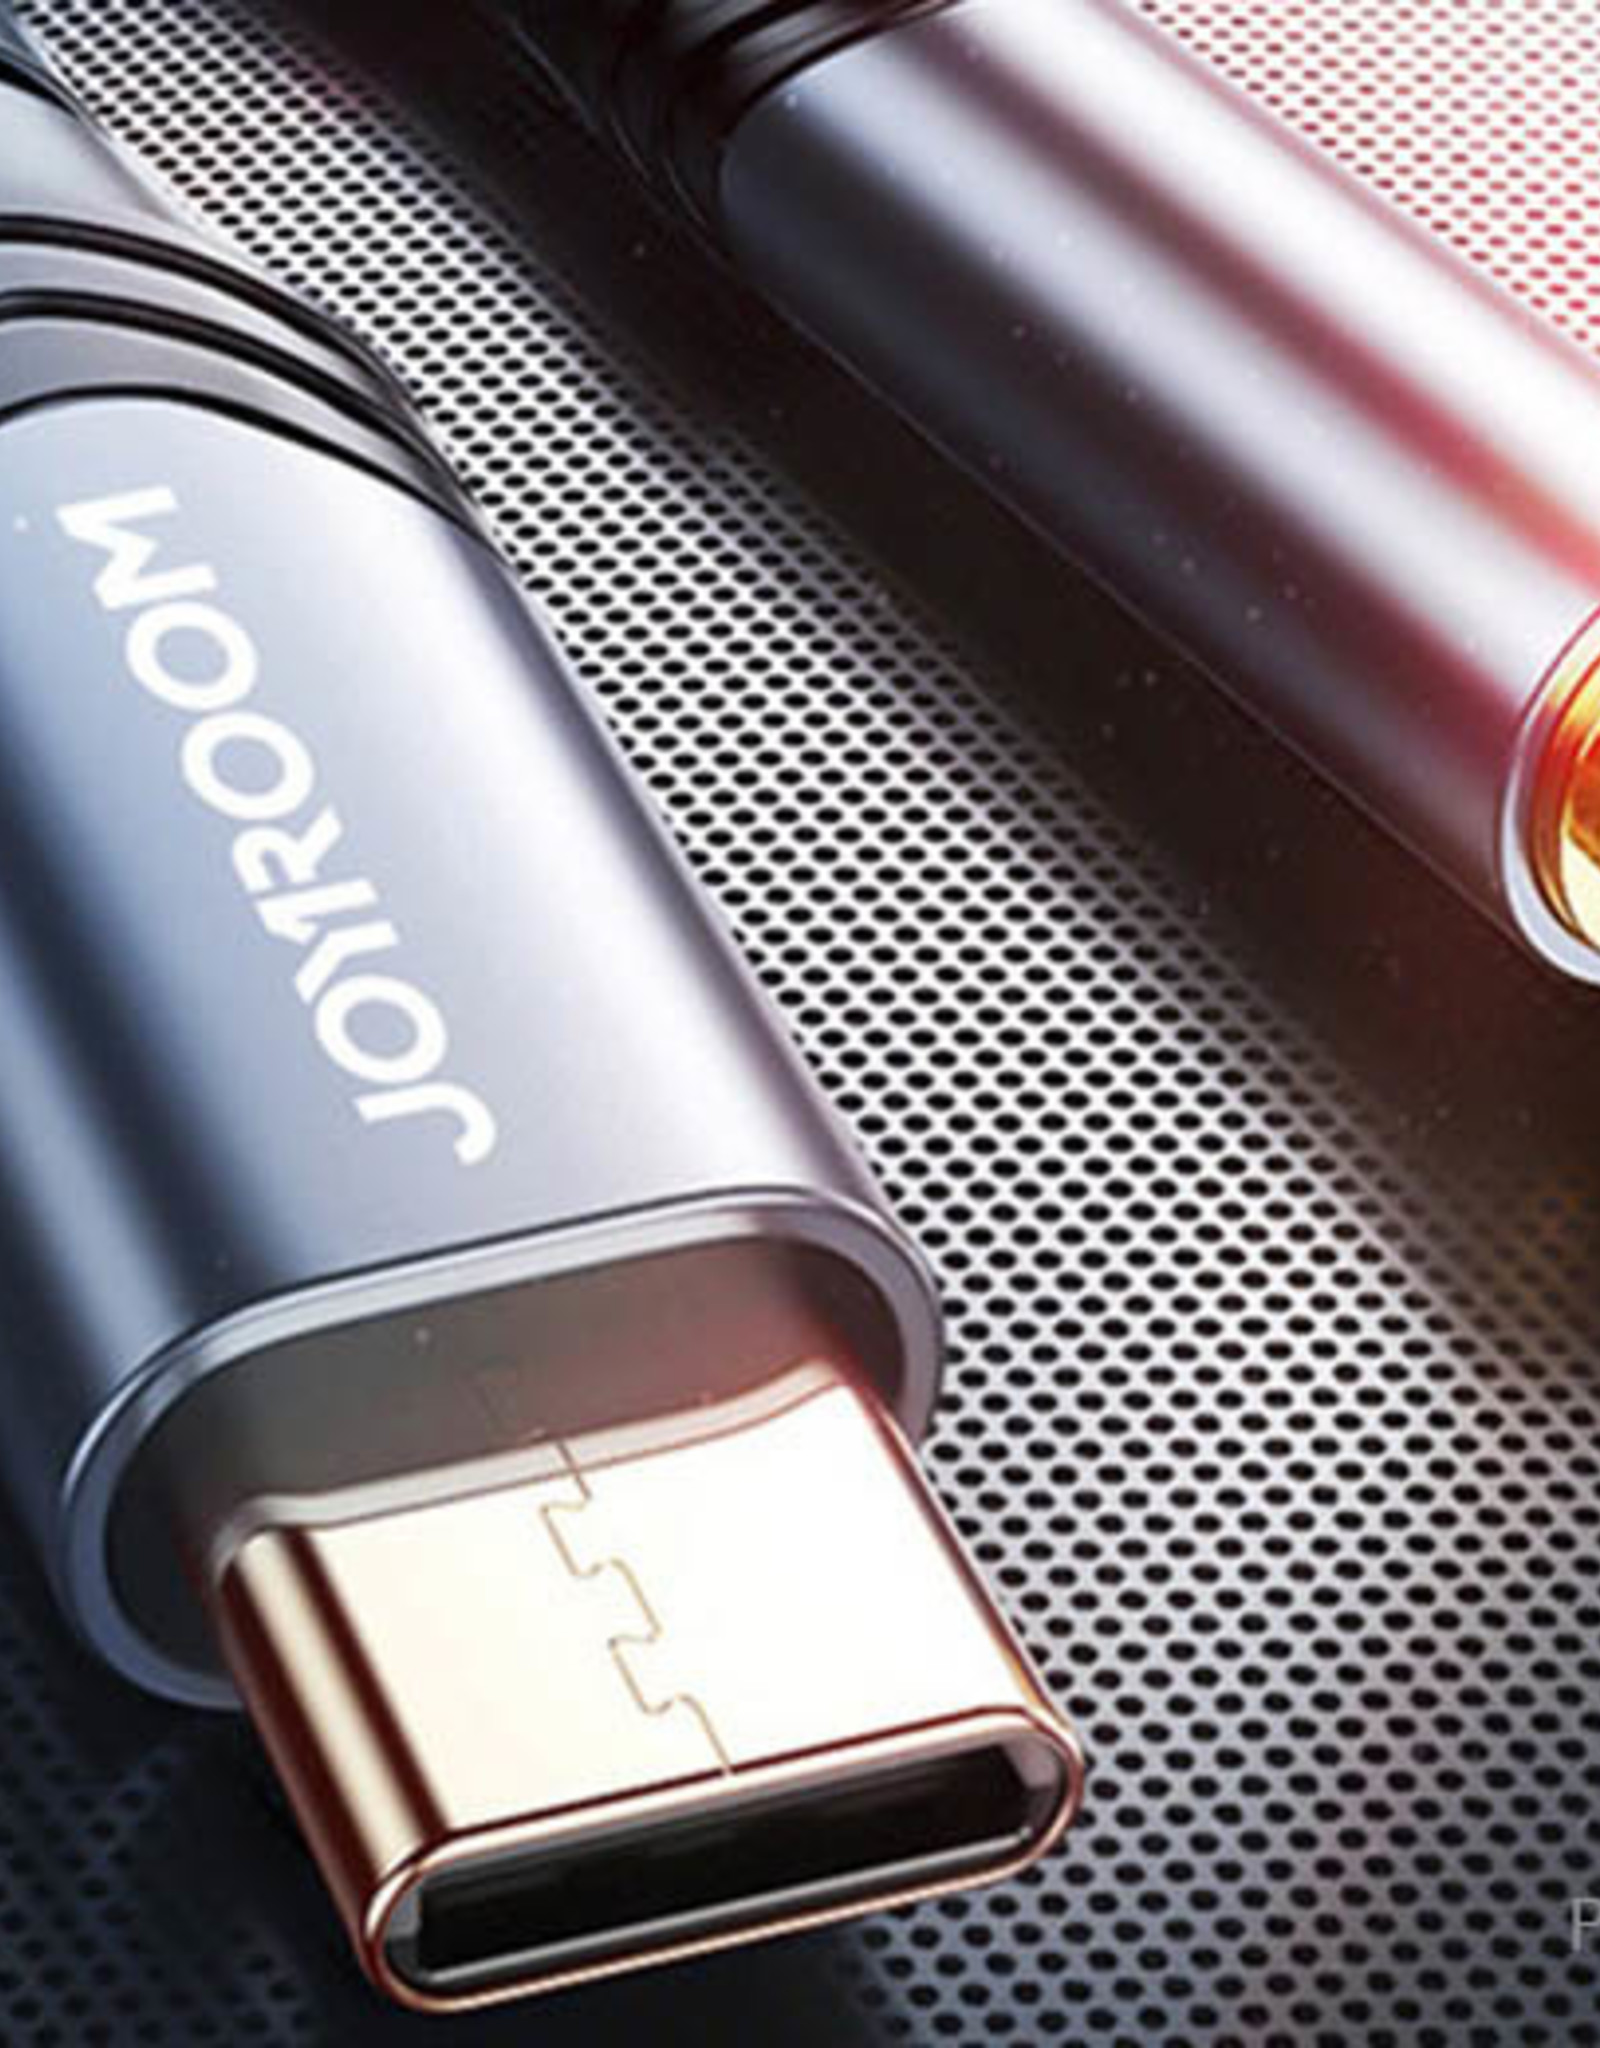 Joyroom SY-A03 Universal USB-C to 3.5mm Audio Cable (100m)(1m)